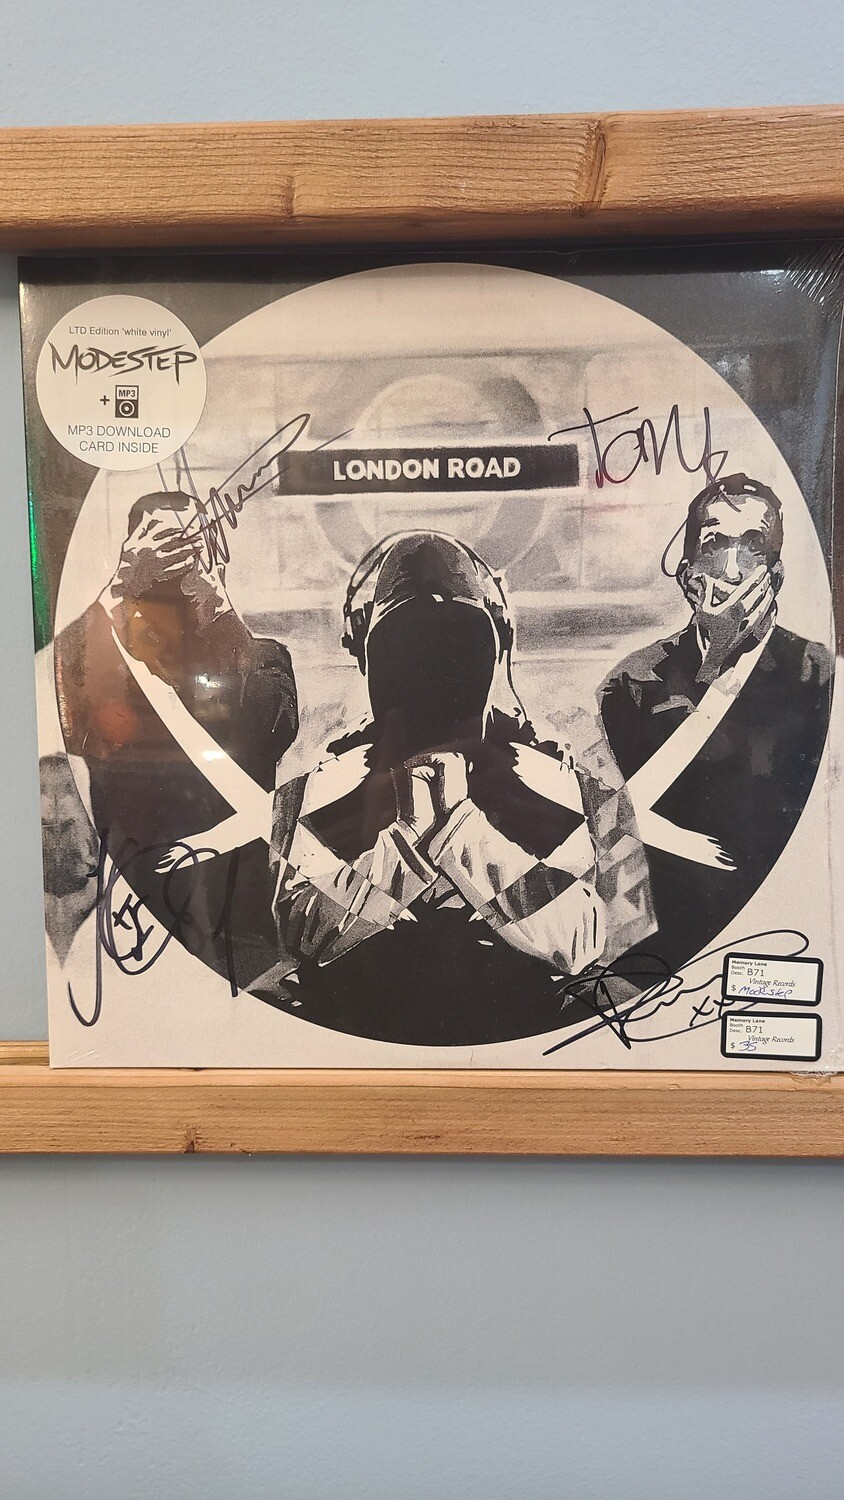 Modestep - LP - London Rd